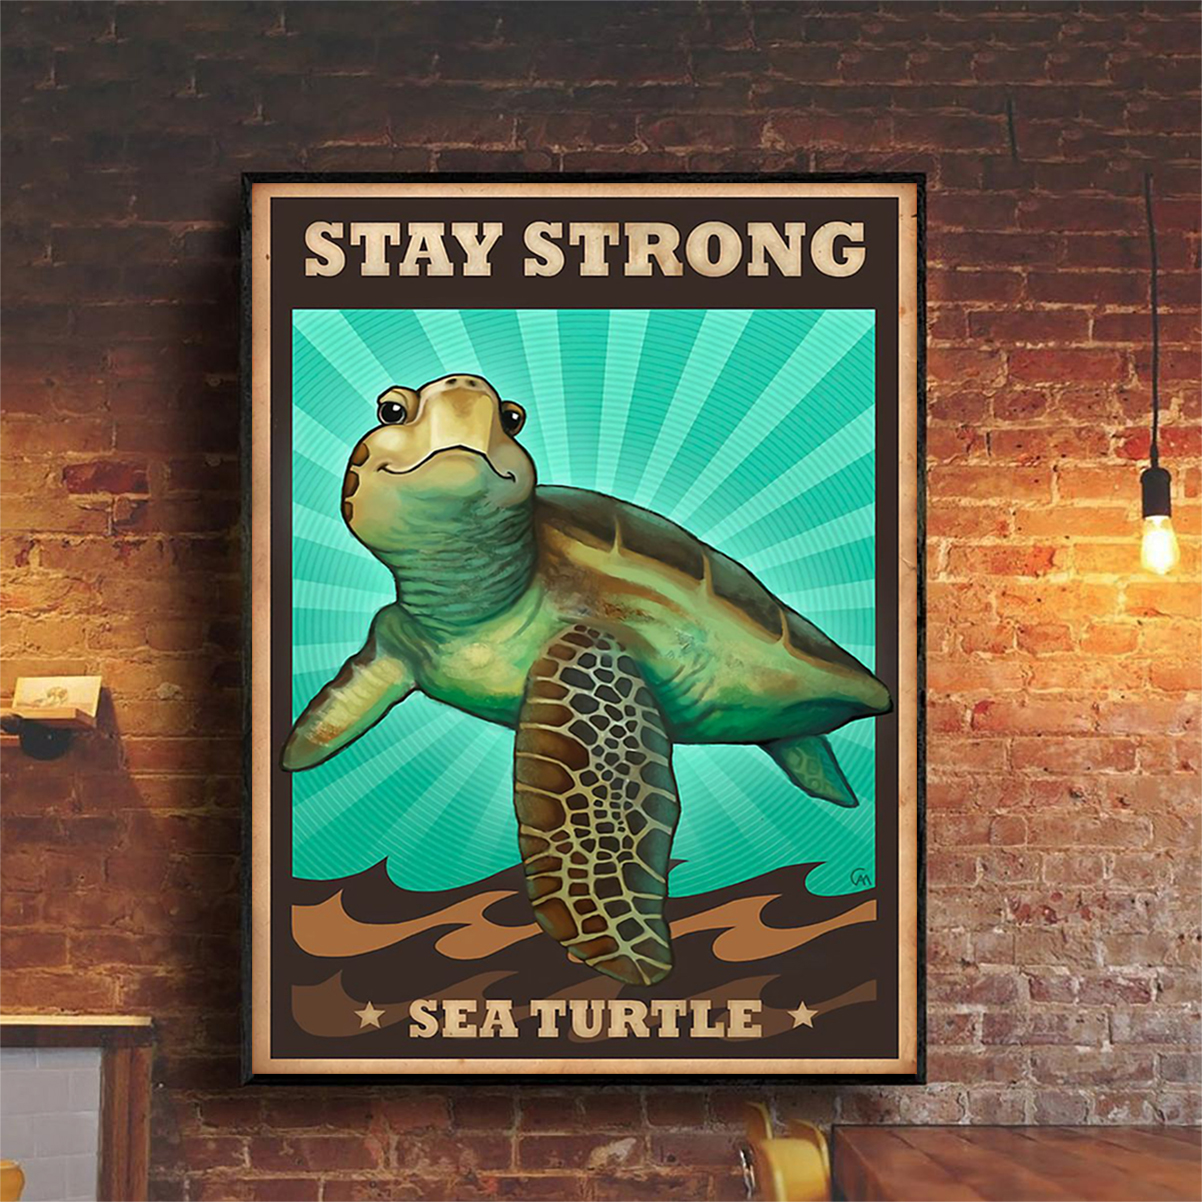 Stay strong sea turtle poster A2